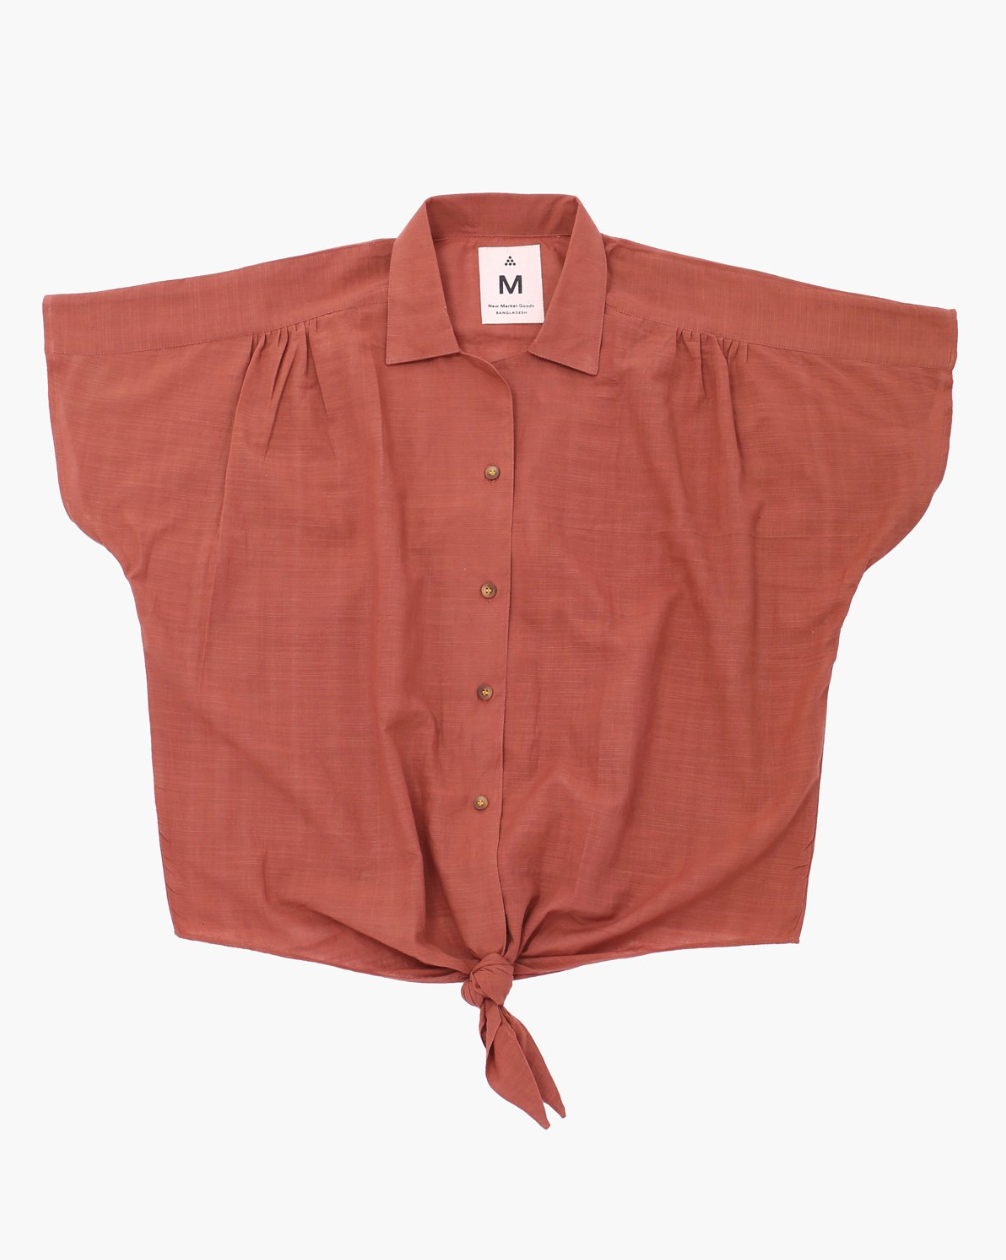 BURGUNDY NATURAL FRONT TIE SHIRT - NEW MARKET GOODS